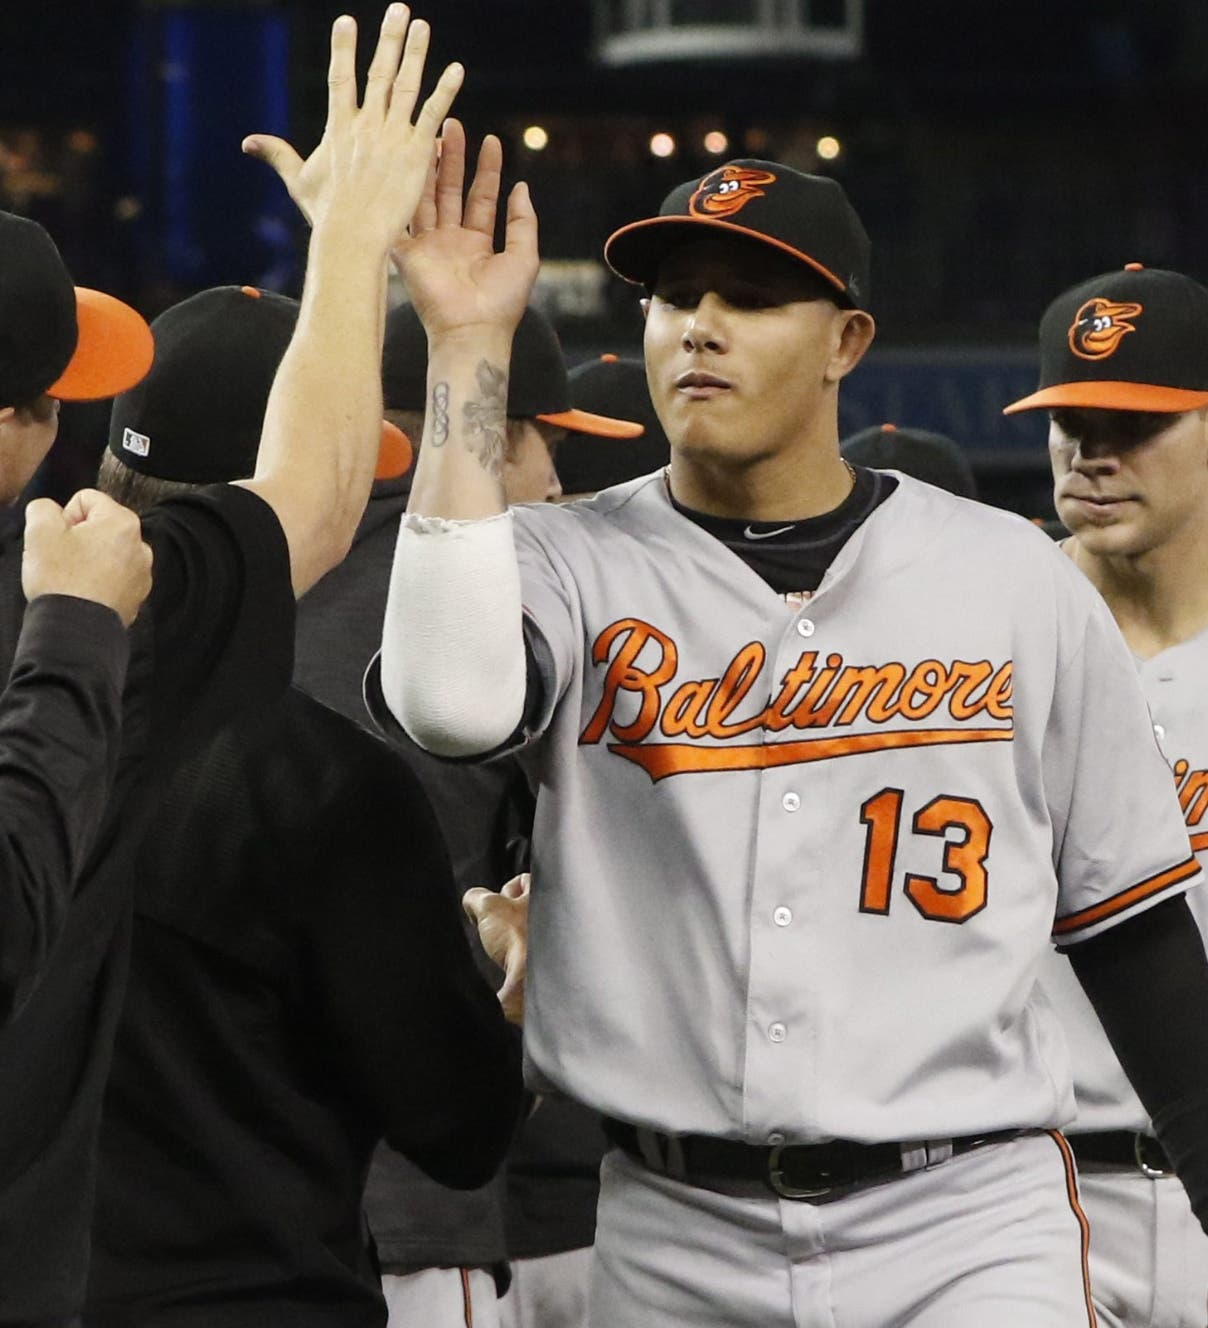 Baltimore Orioles' Manny Machado (13) and Chris Davis (19) celebrate after defeating the Toronto Blue Jays in a baseball game in Toronto, Thursday Sept. 29, 2016. (Mark Blinch/The Canadian Press via AP)